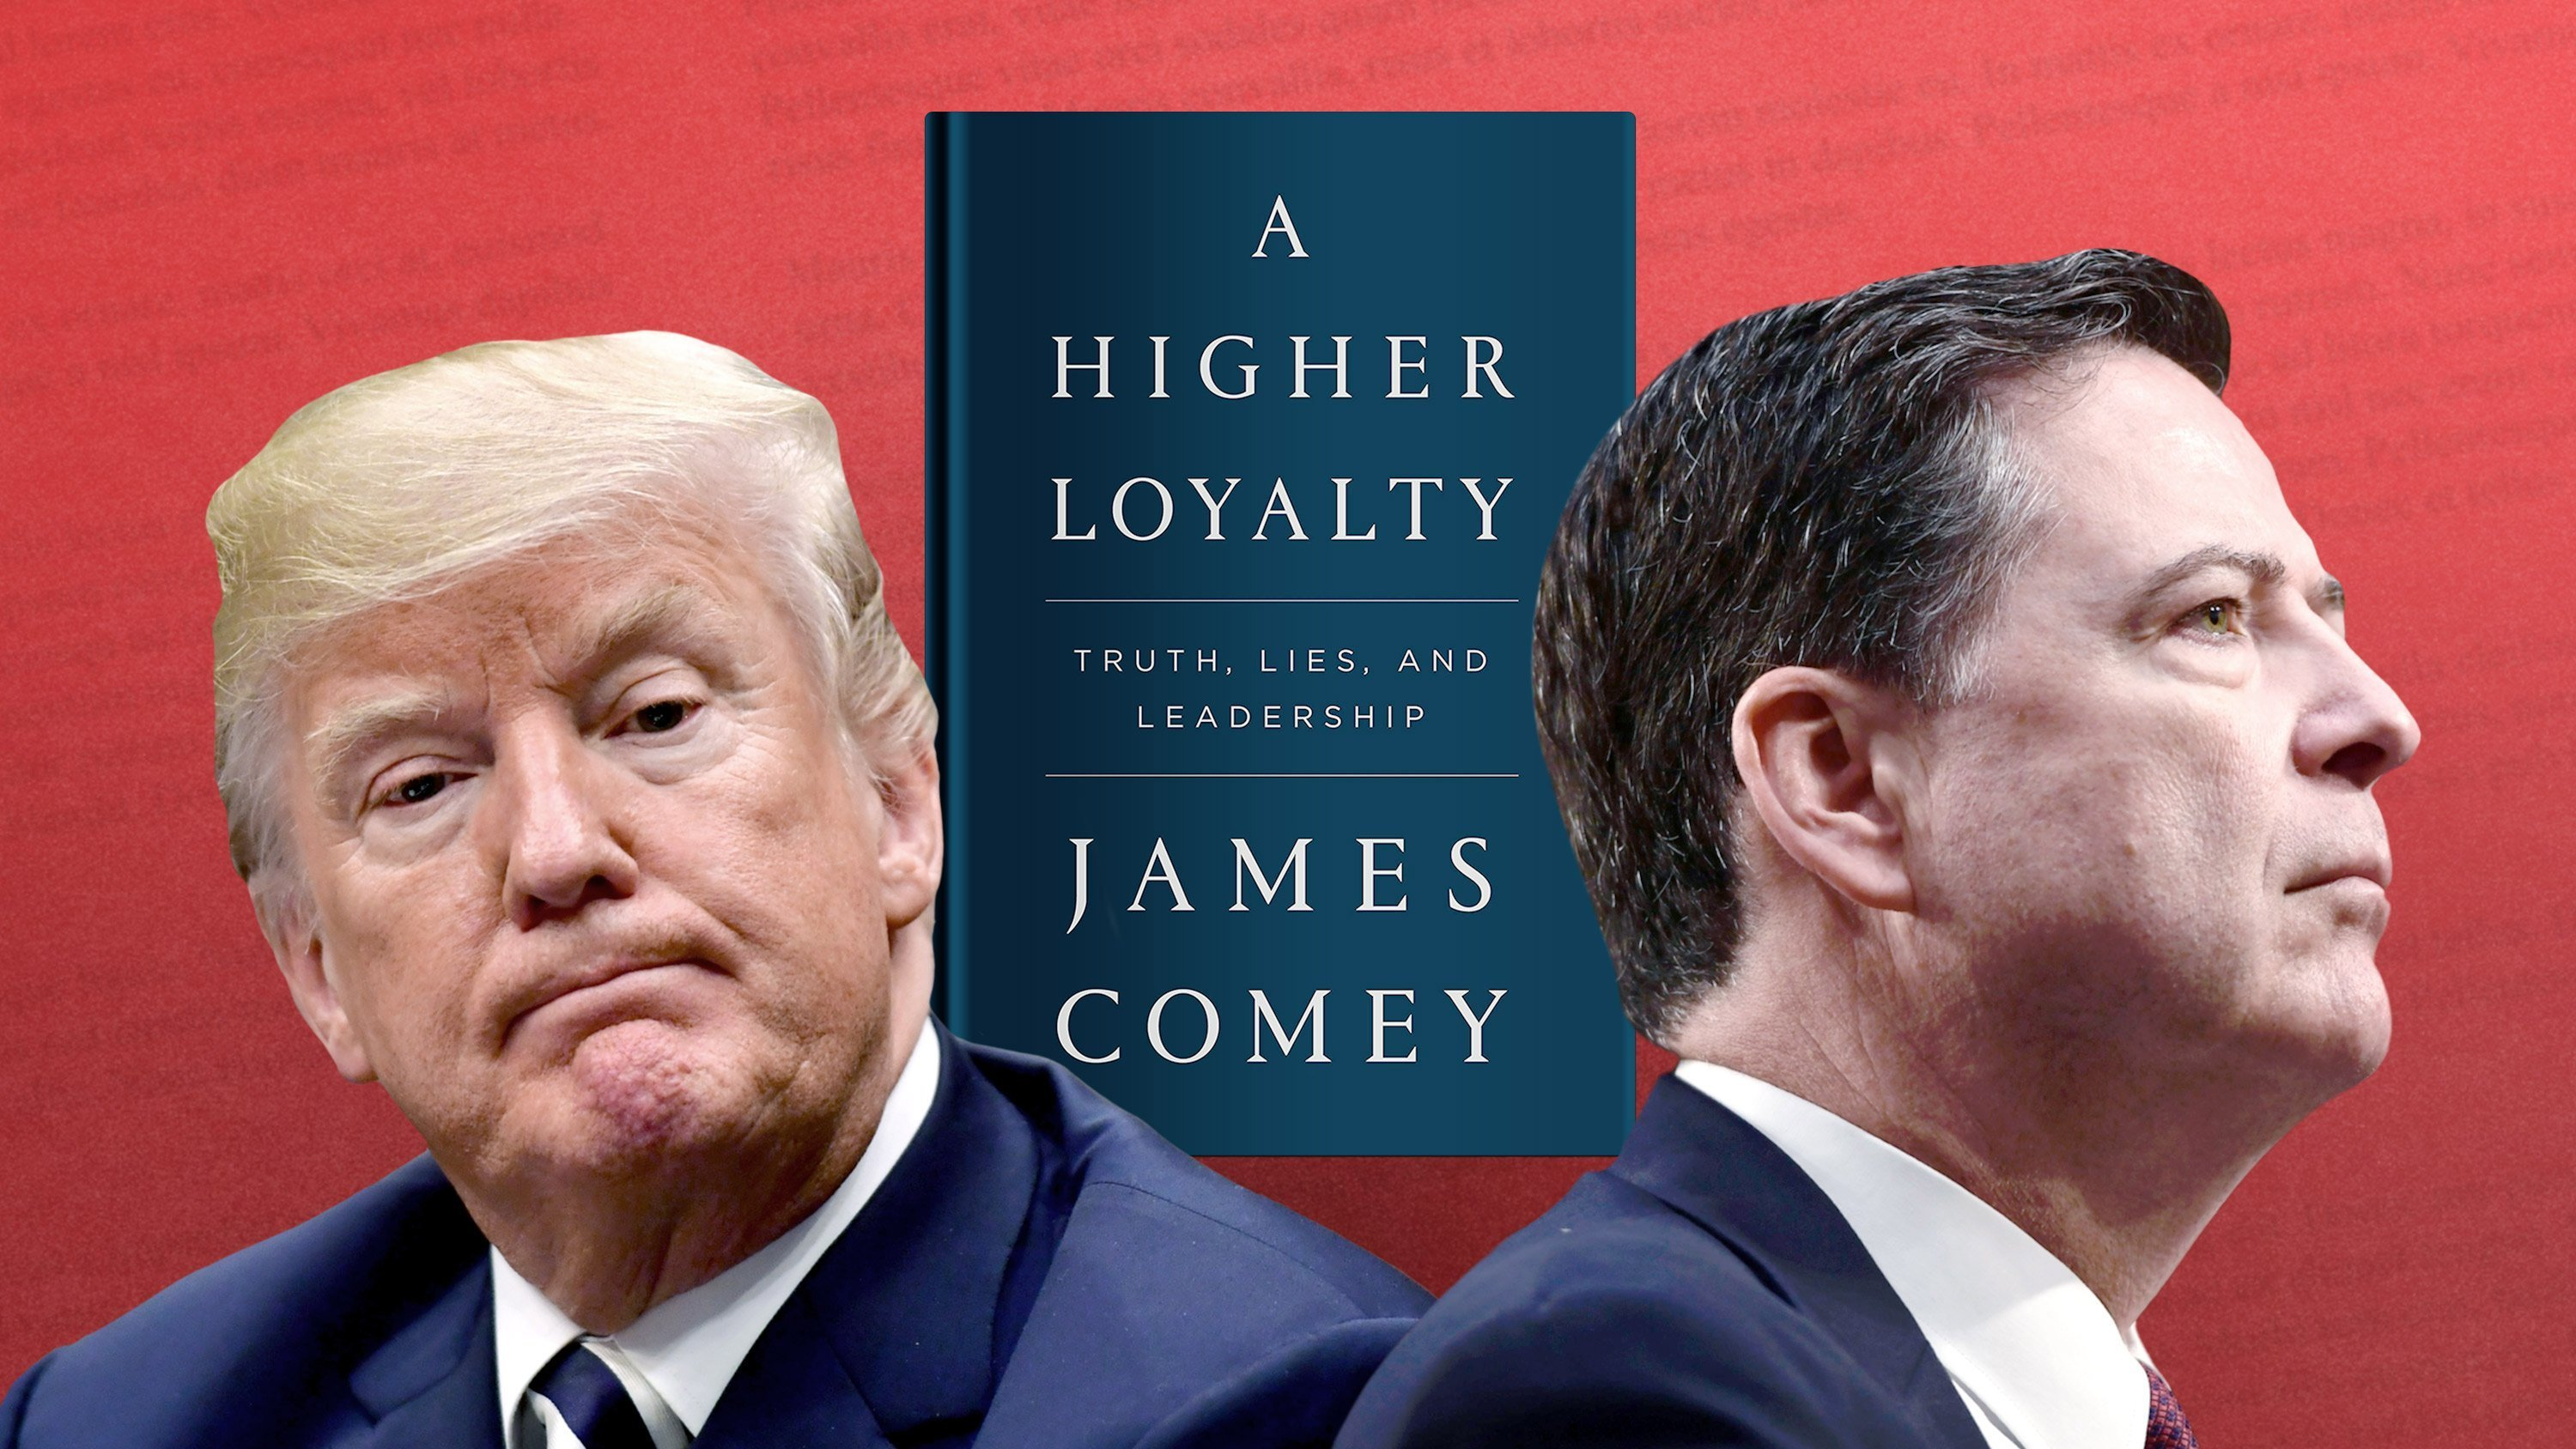 Comey book says John Kelly referred to Trump as